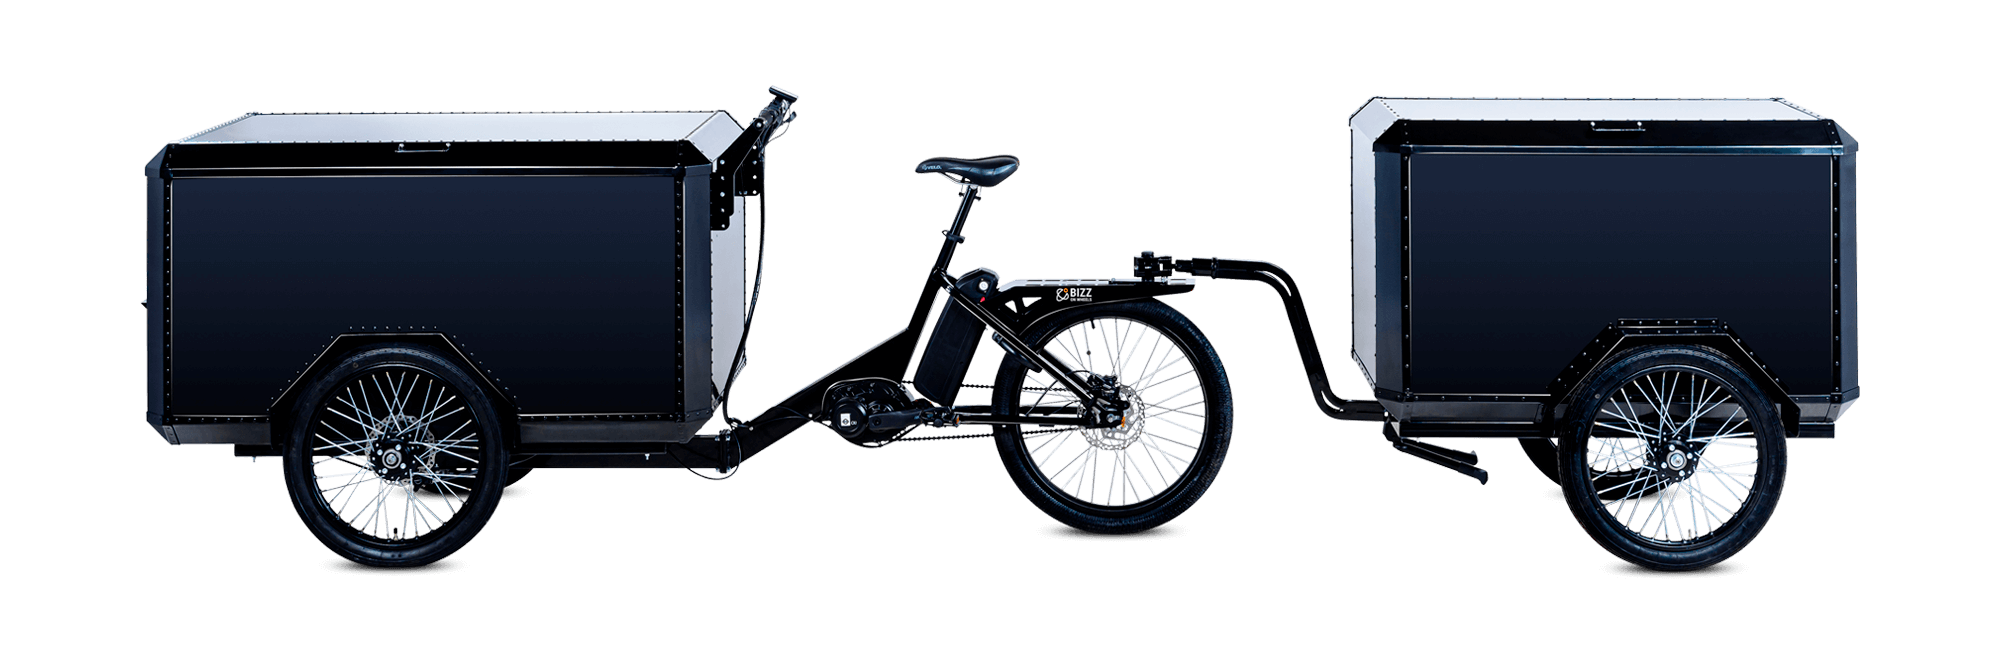 TR01 electric cargo bike with trailer manufactured by Bizz On Wheels